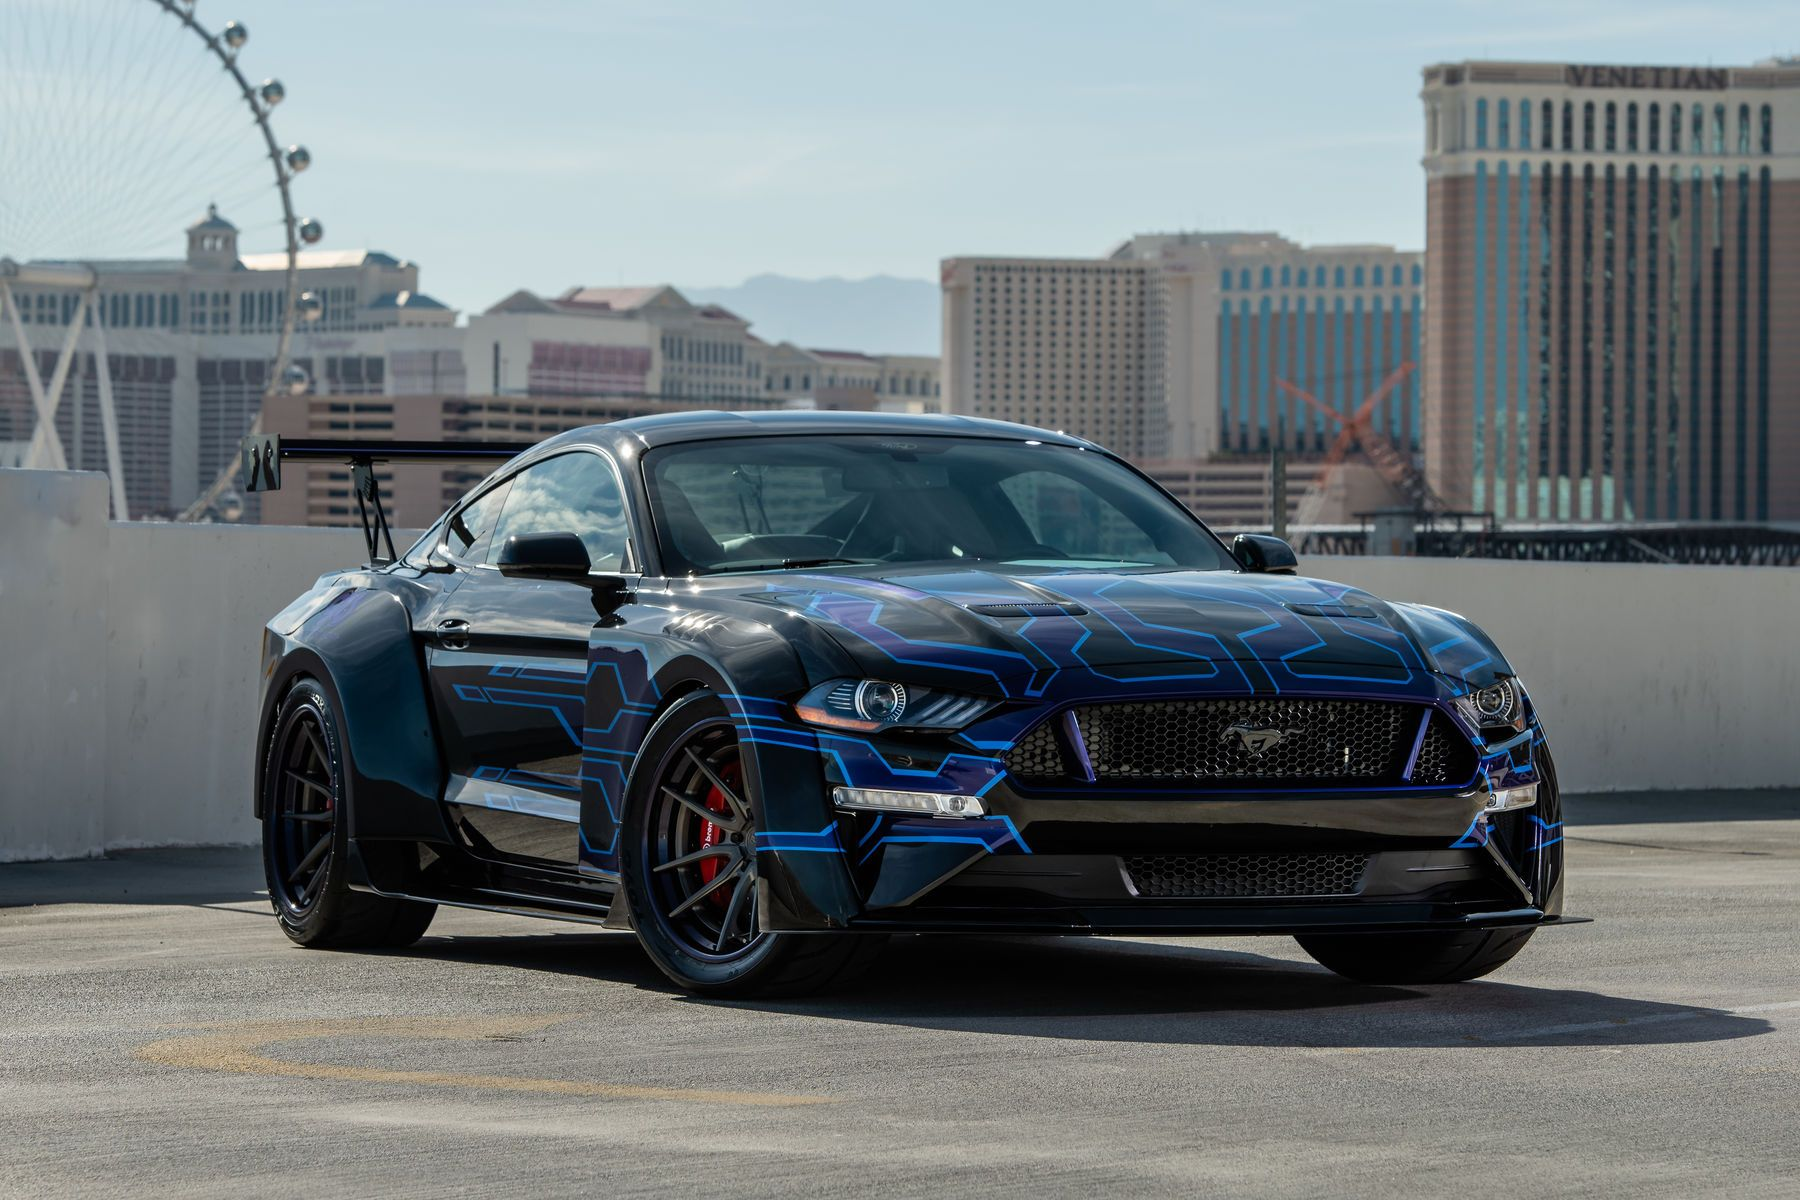 2018 Ford Mustang Gt Fastback By Galpin Auto Sports Gas Sema 2018 Widebody Mustang Mustang Ford Mustang